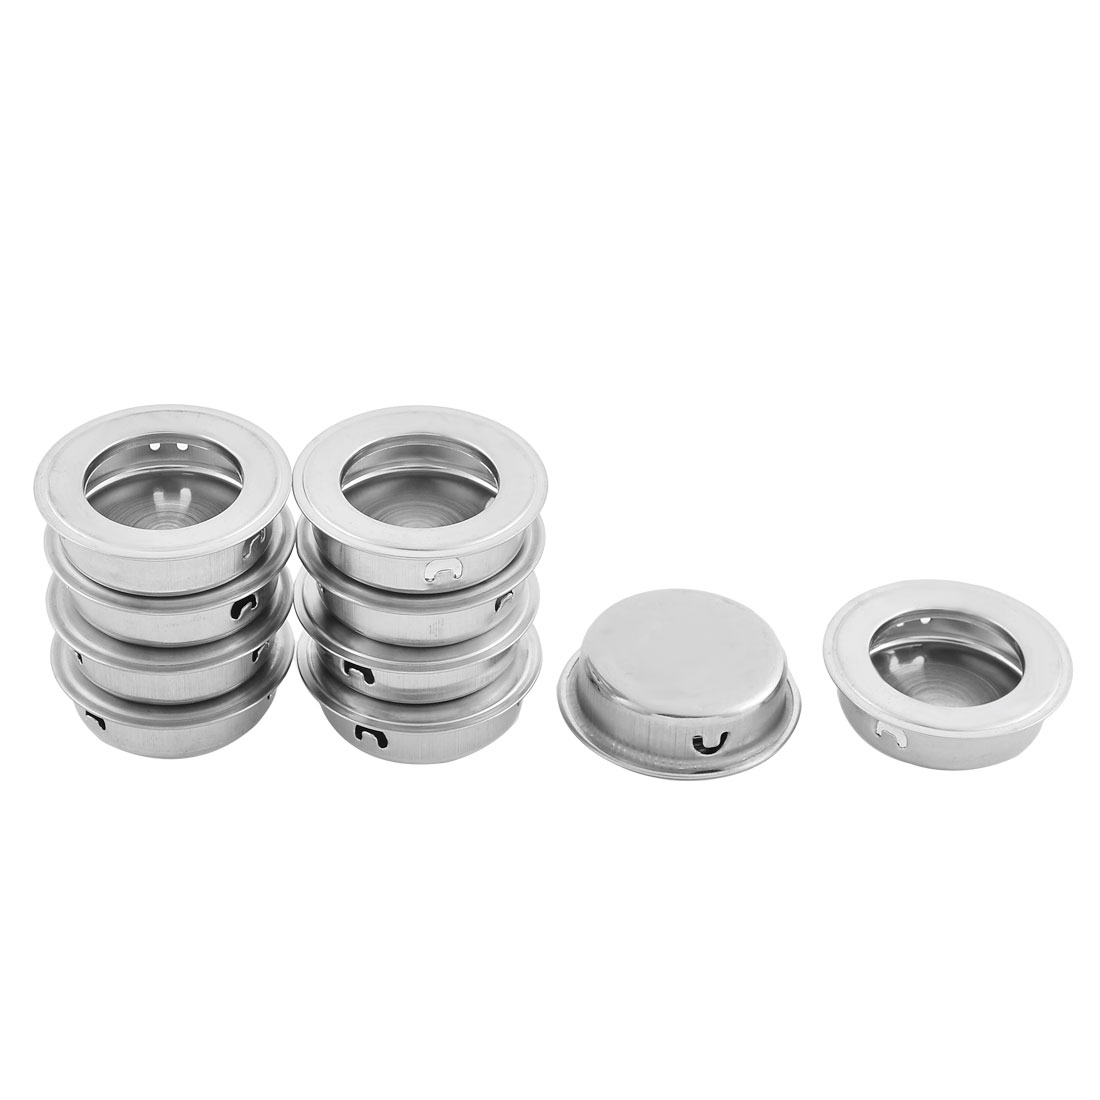 Drawer Dresser Rounded Stainless Steel Flush Pull Handle Silver Tone 10 PCS